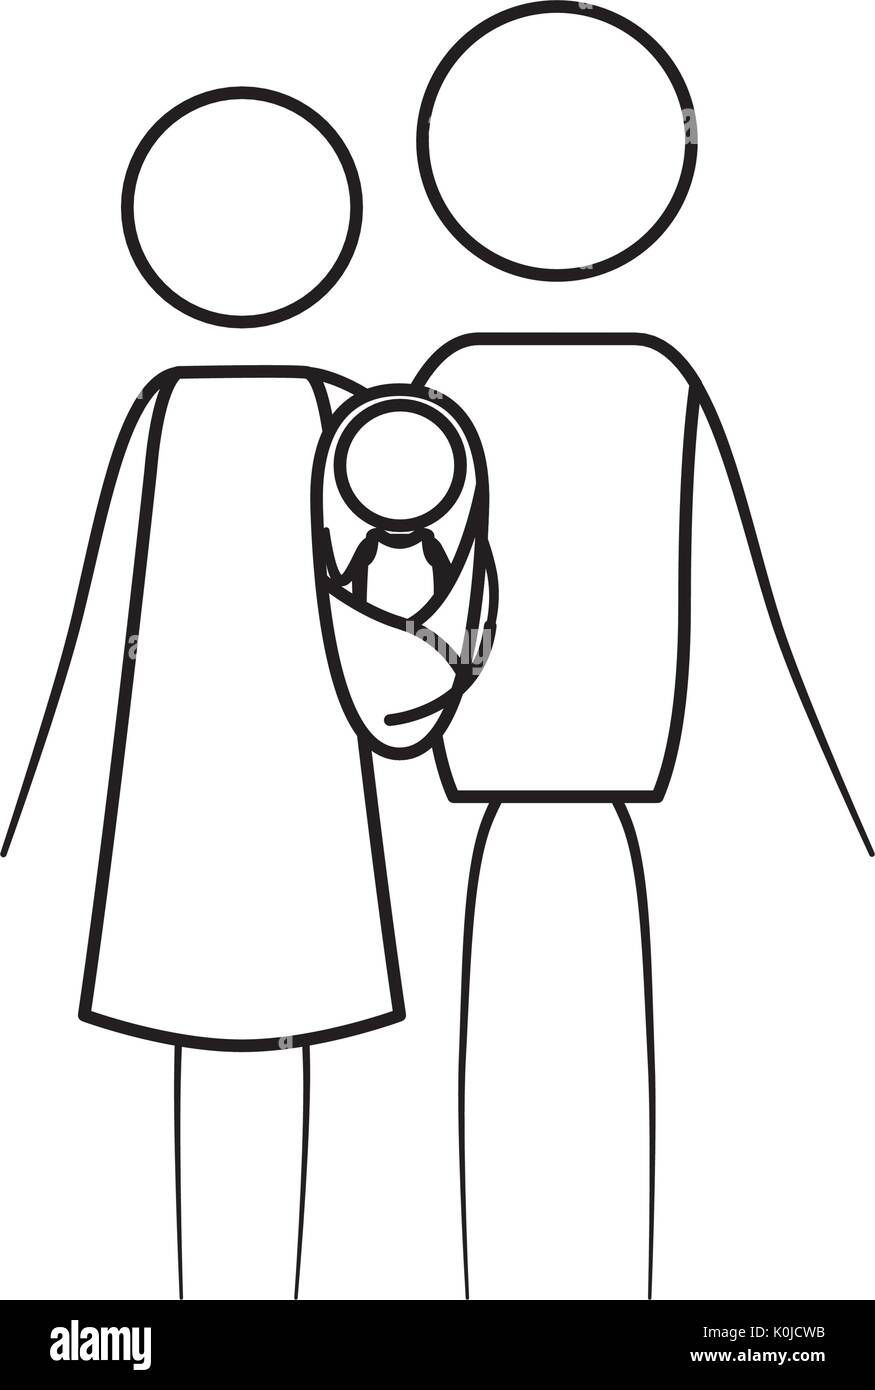 Sketch thin contour of pictogram parents with a baby girl wrapped in a blanket